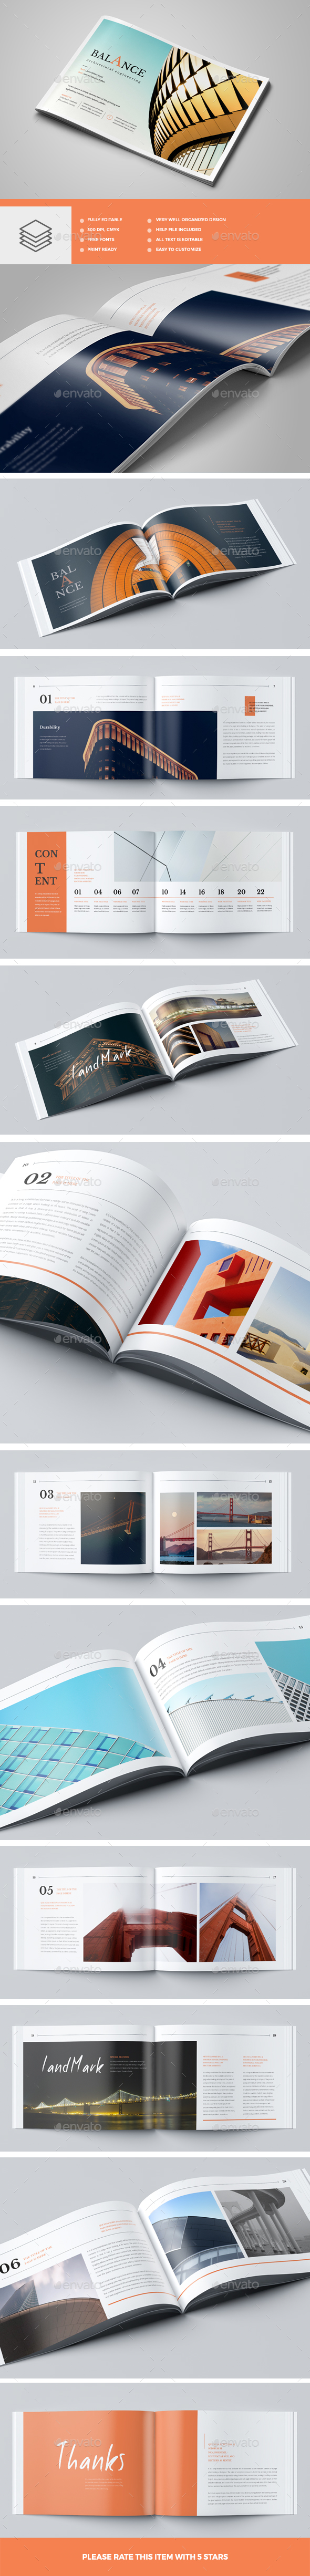 Modern Architecture Brochure 24 Pages A5 - Brochures Print Templates